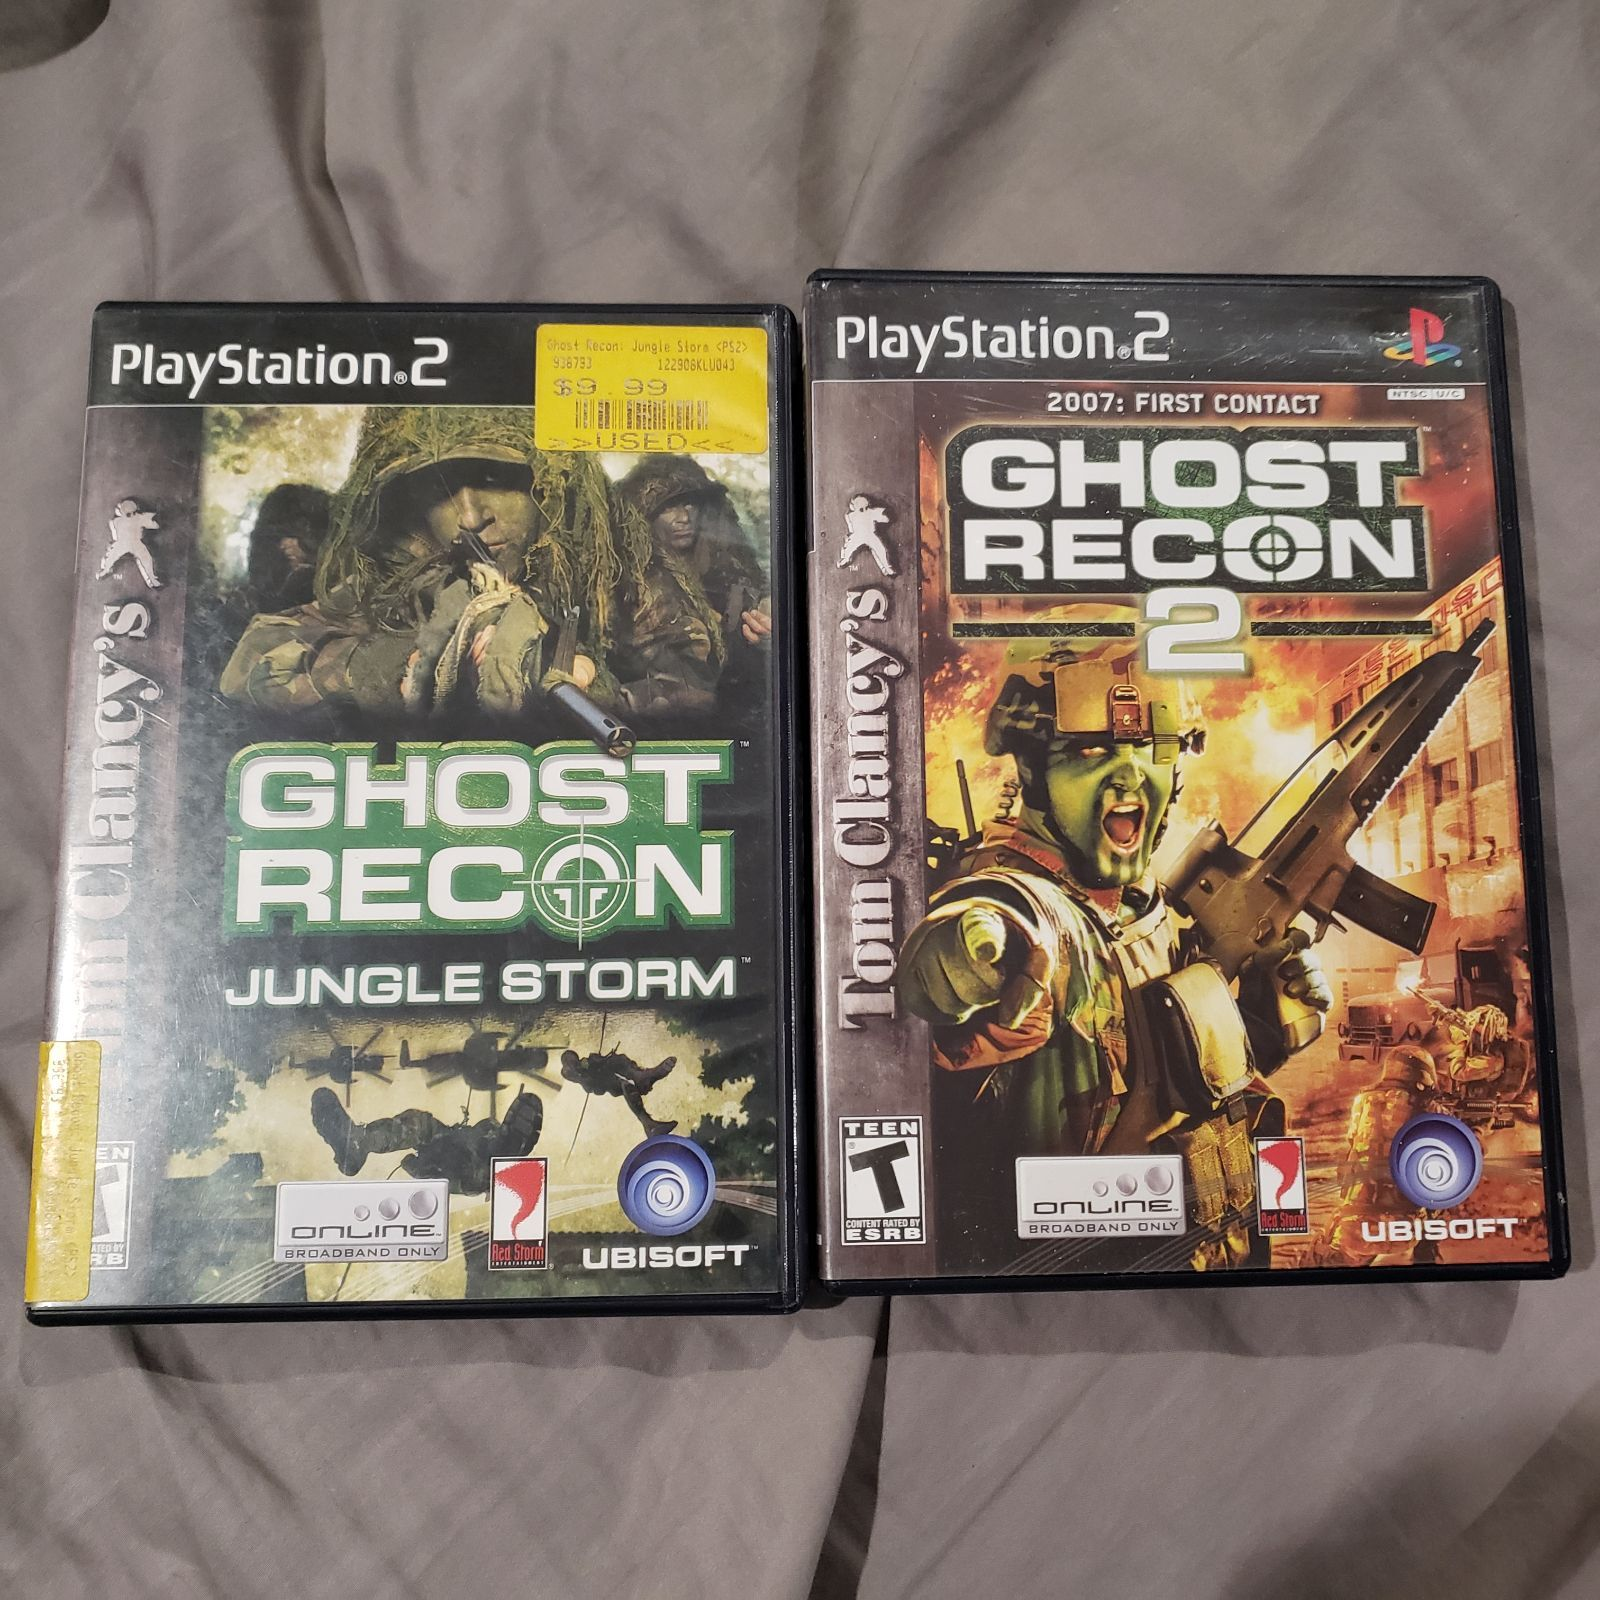 Ghost Recon Playstation 2 Game Bundle Includes Ghost Recon Jungle